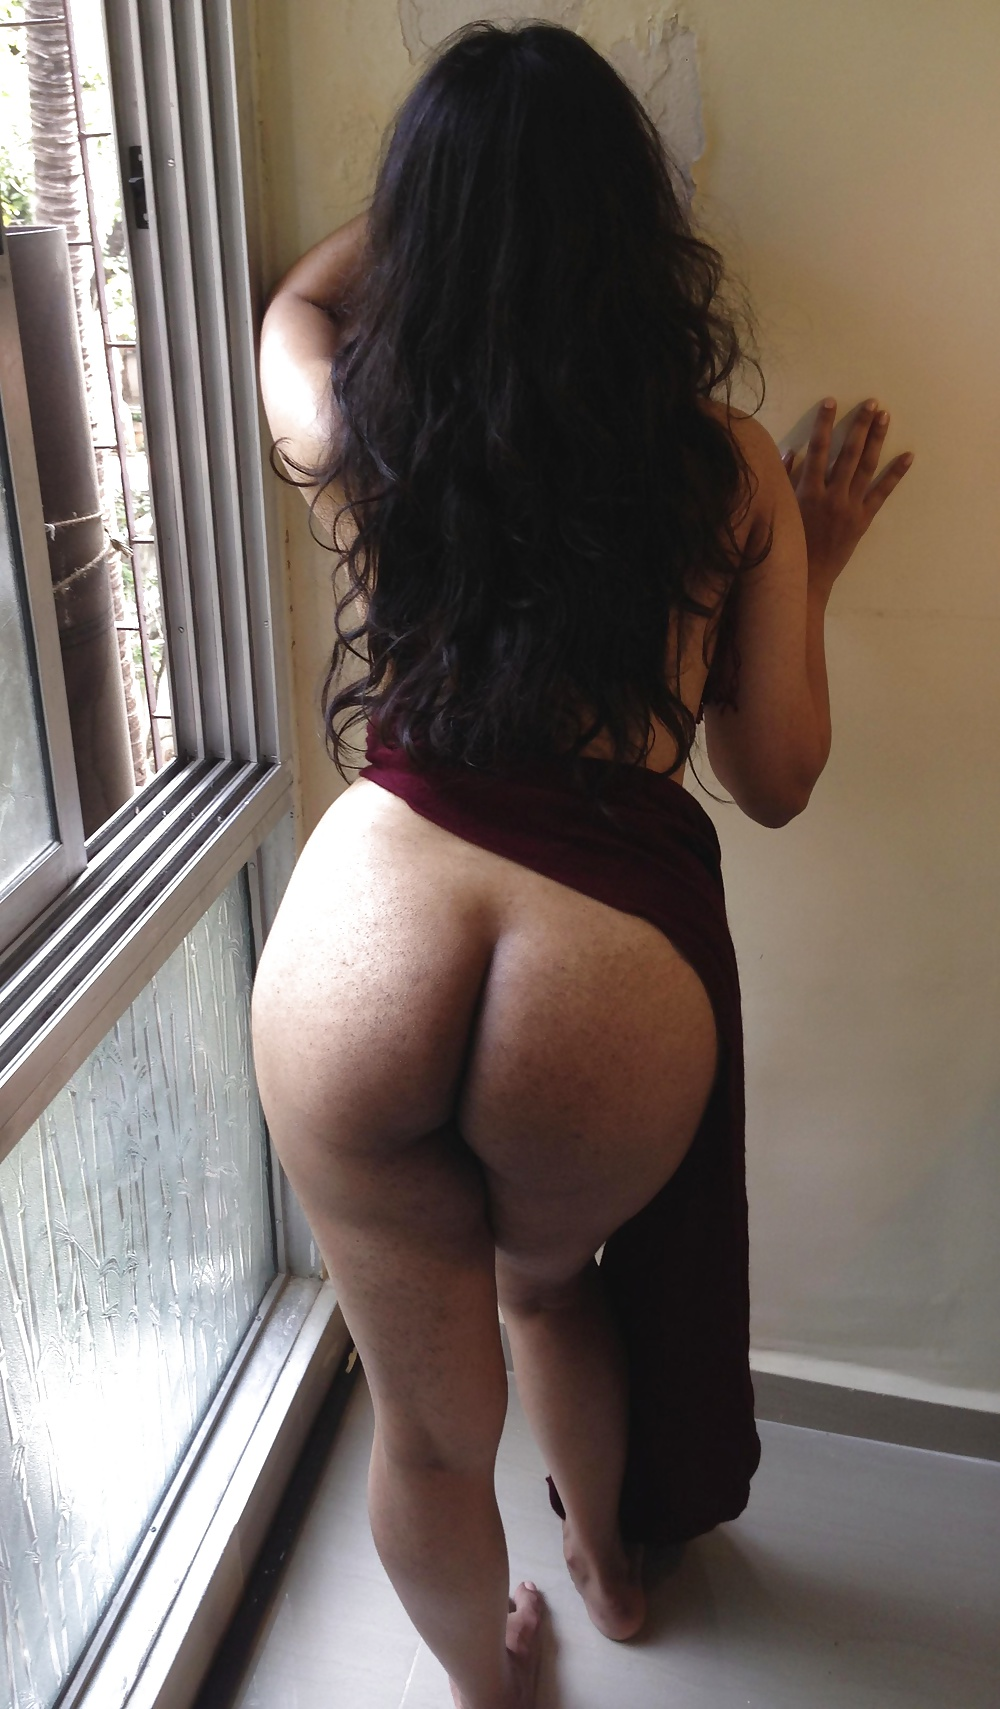 Desi sexy nude ass, bbw streaming homemade amatuer